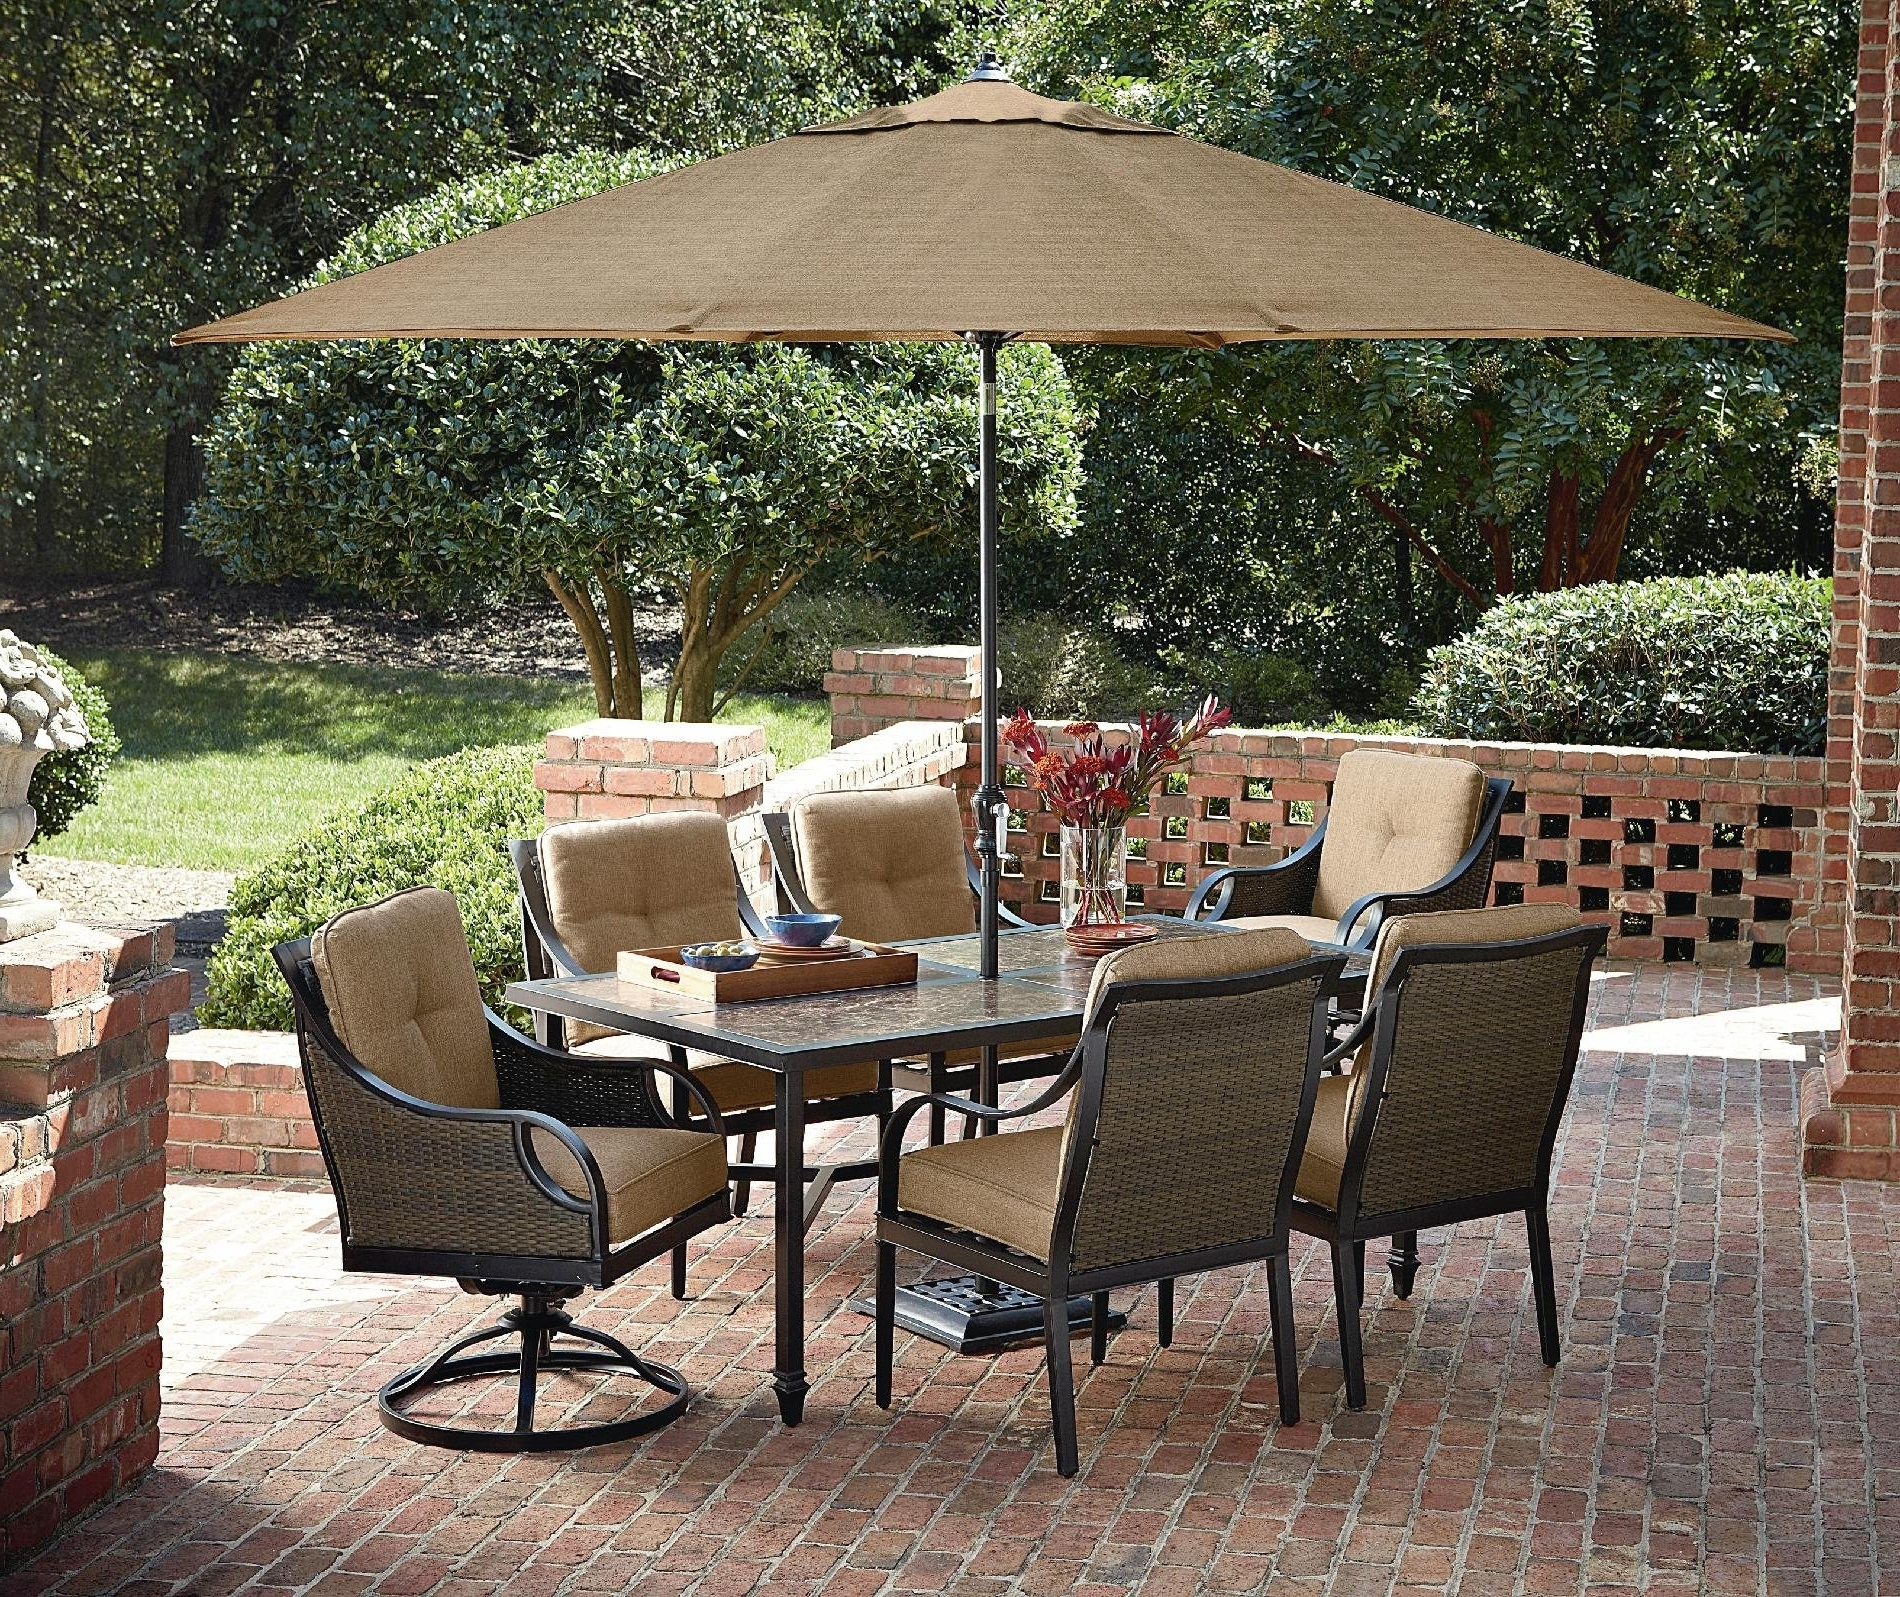 Sears Patio Furniture Conversation Sets Pertaining To Trendy Eye Patio Sears Furniture Ty Pennington For Conversation Sets (View 14 of 20)